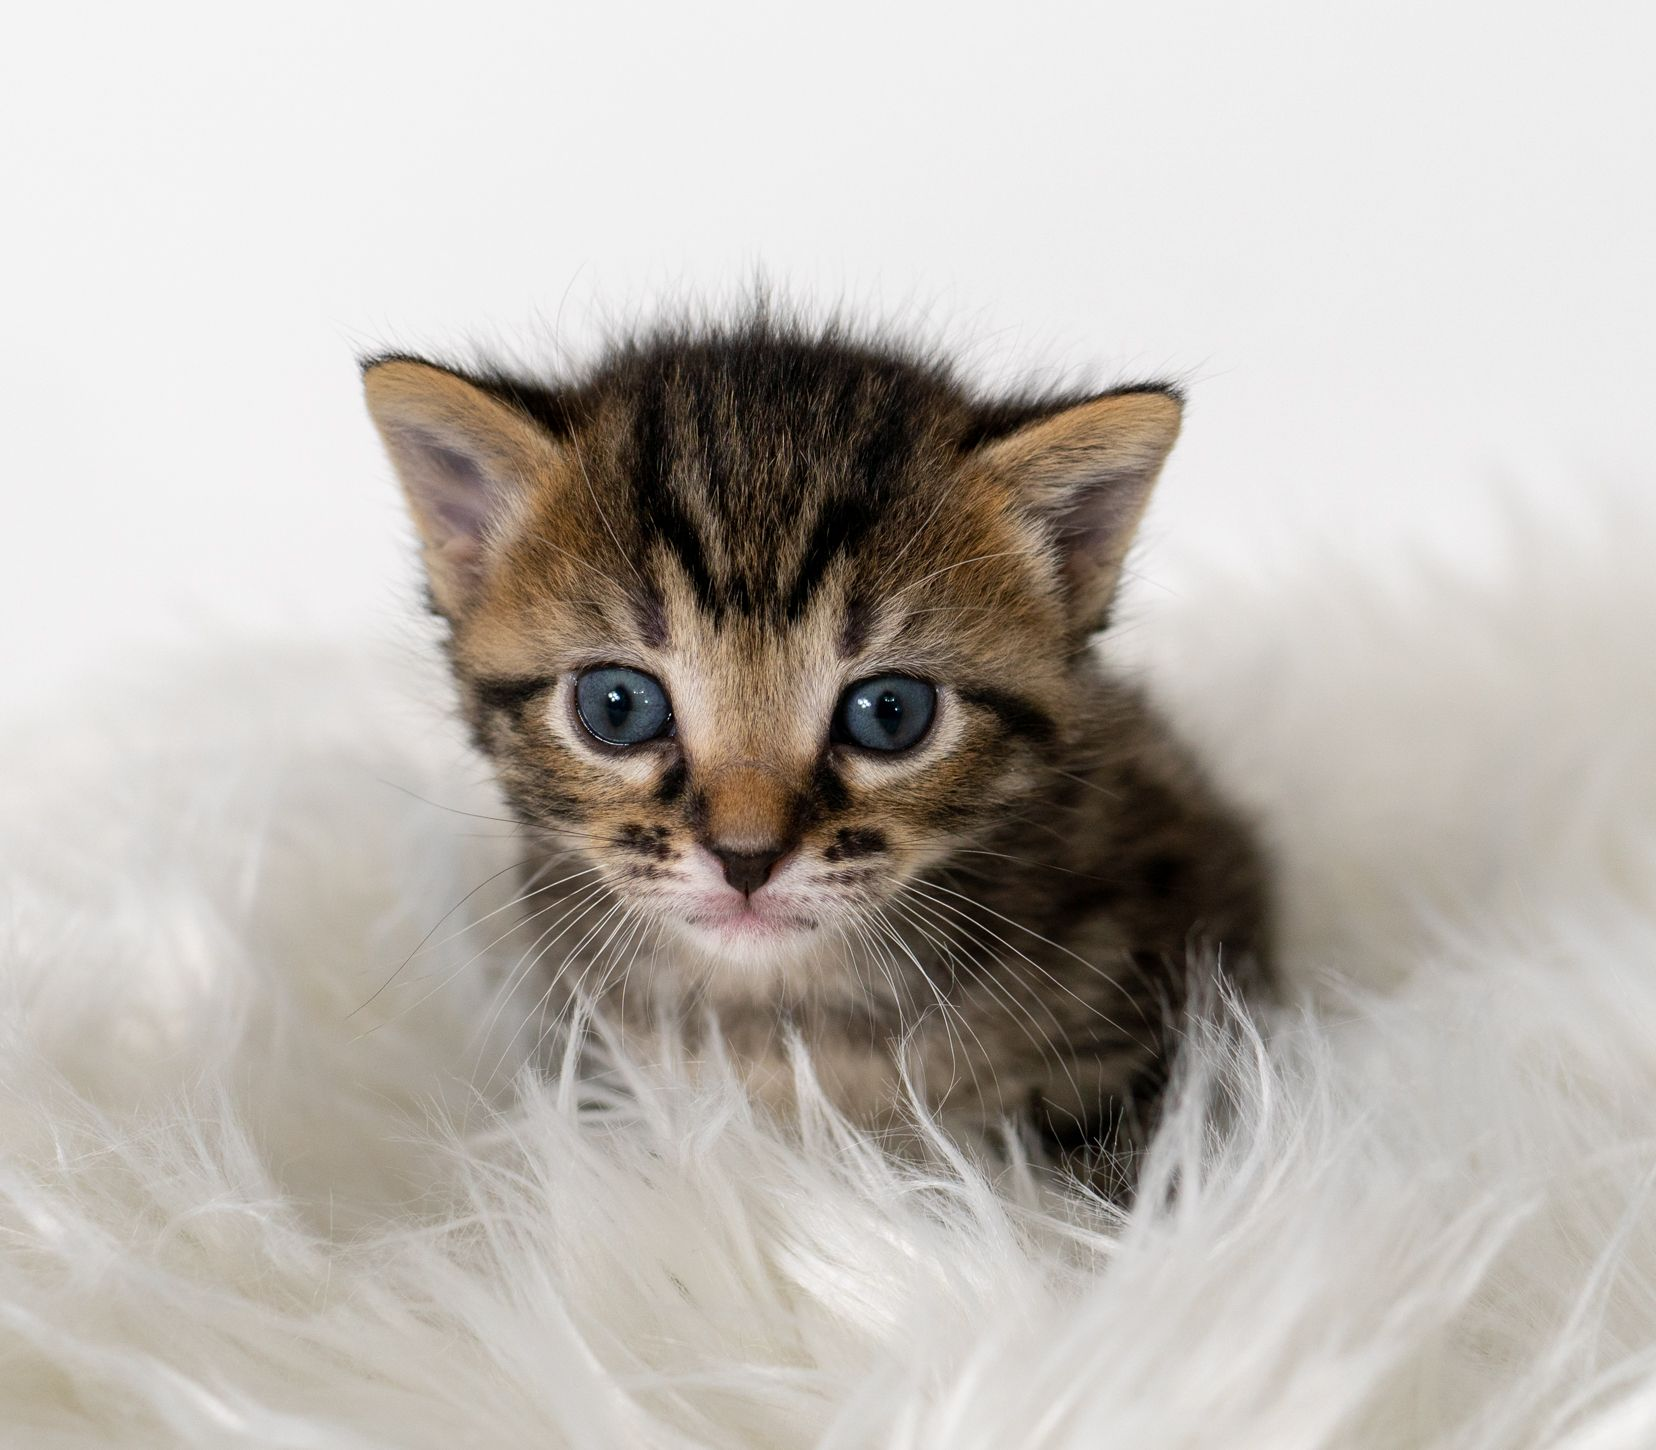 Fables tails photo updates kittens animals beautiful